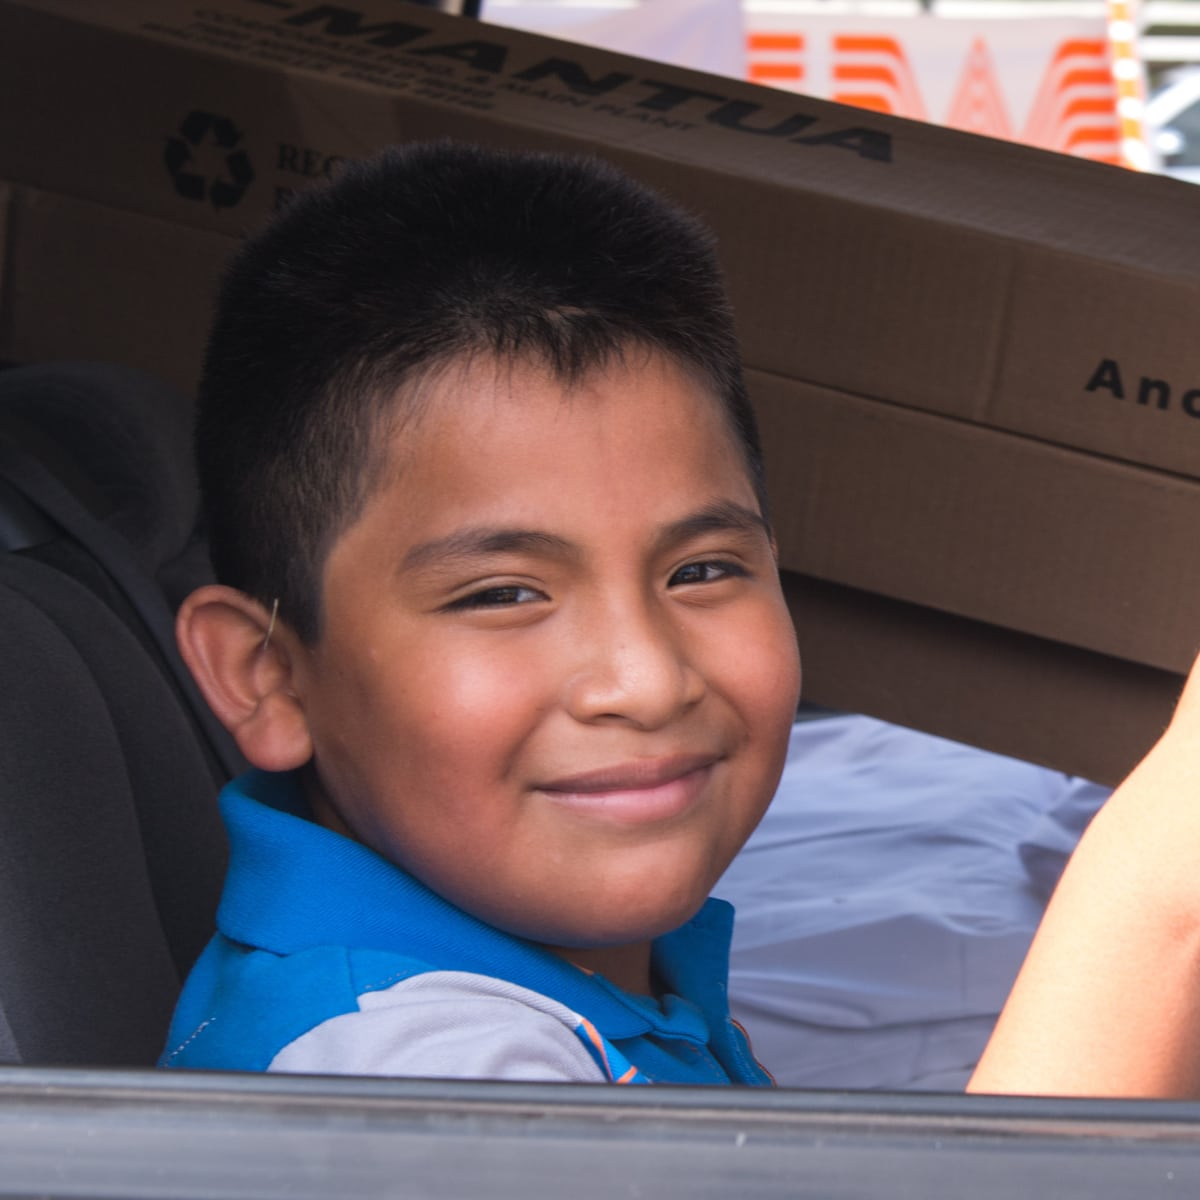 Houston, Carlos Correa, Mattress Firm, Houston Children's Charity mattress giveaway, August 2017, kid gives thumbs up